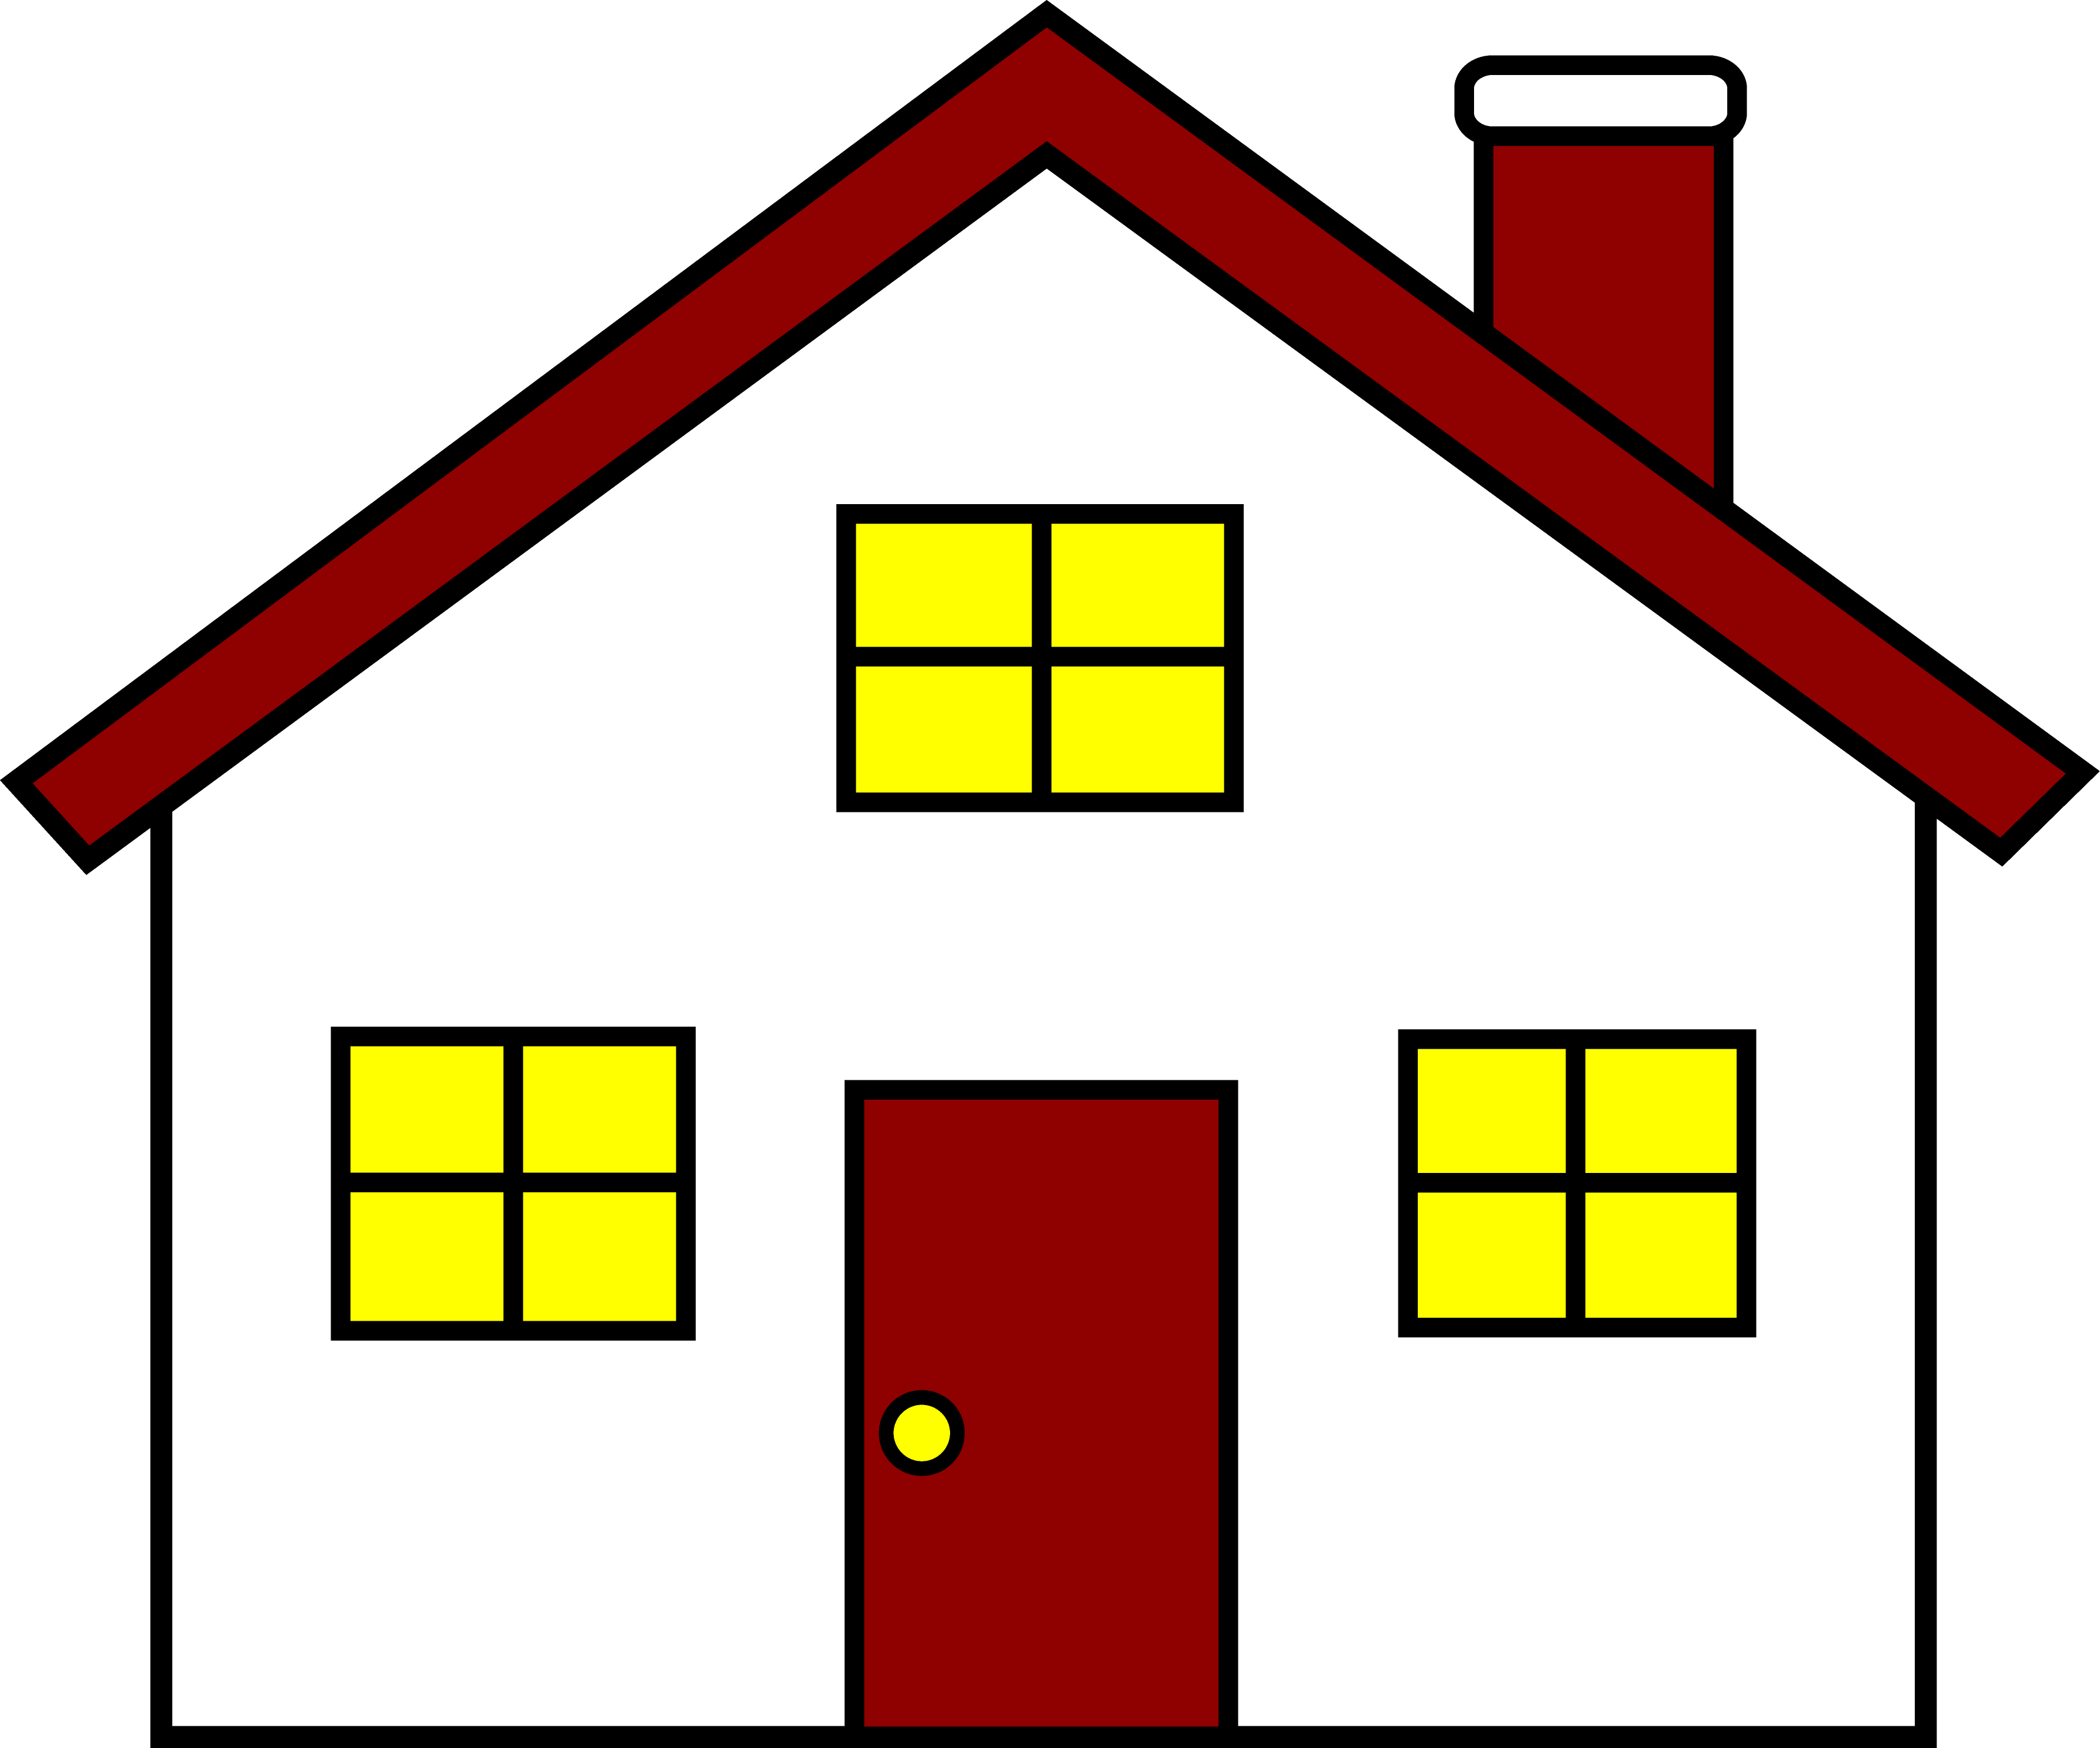 house clipart - House Clipart Images